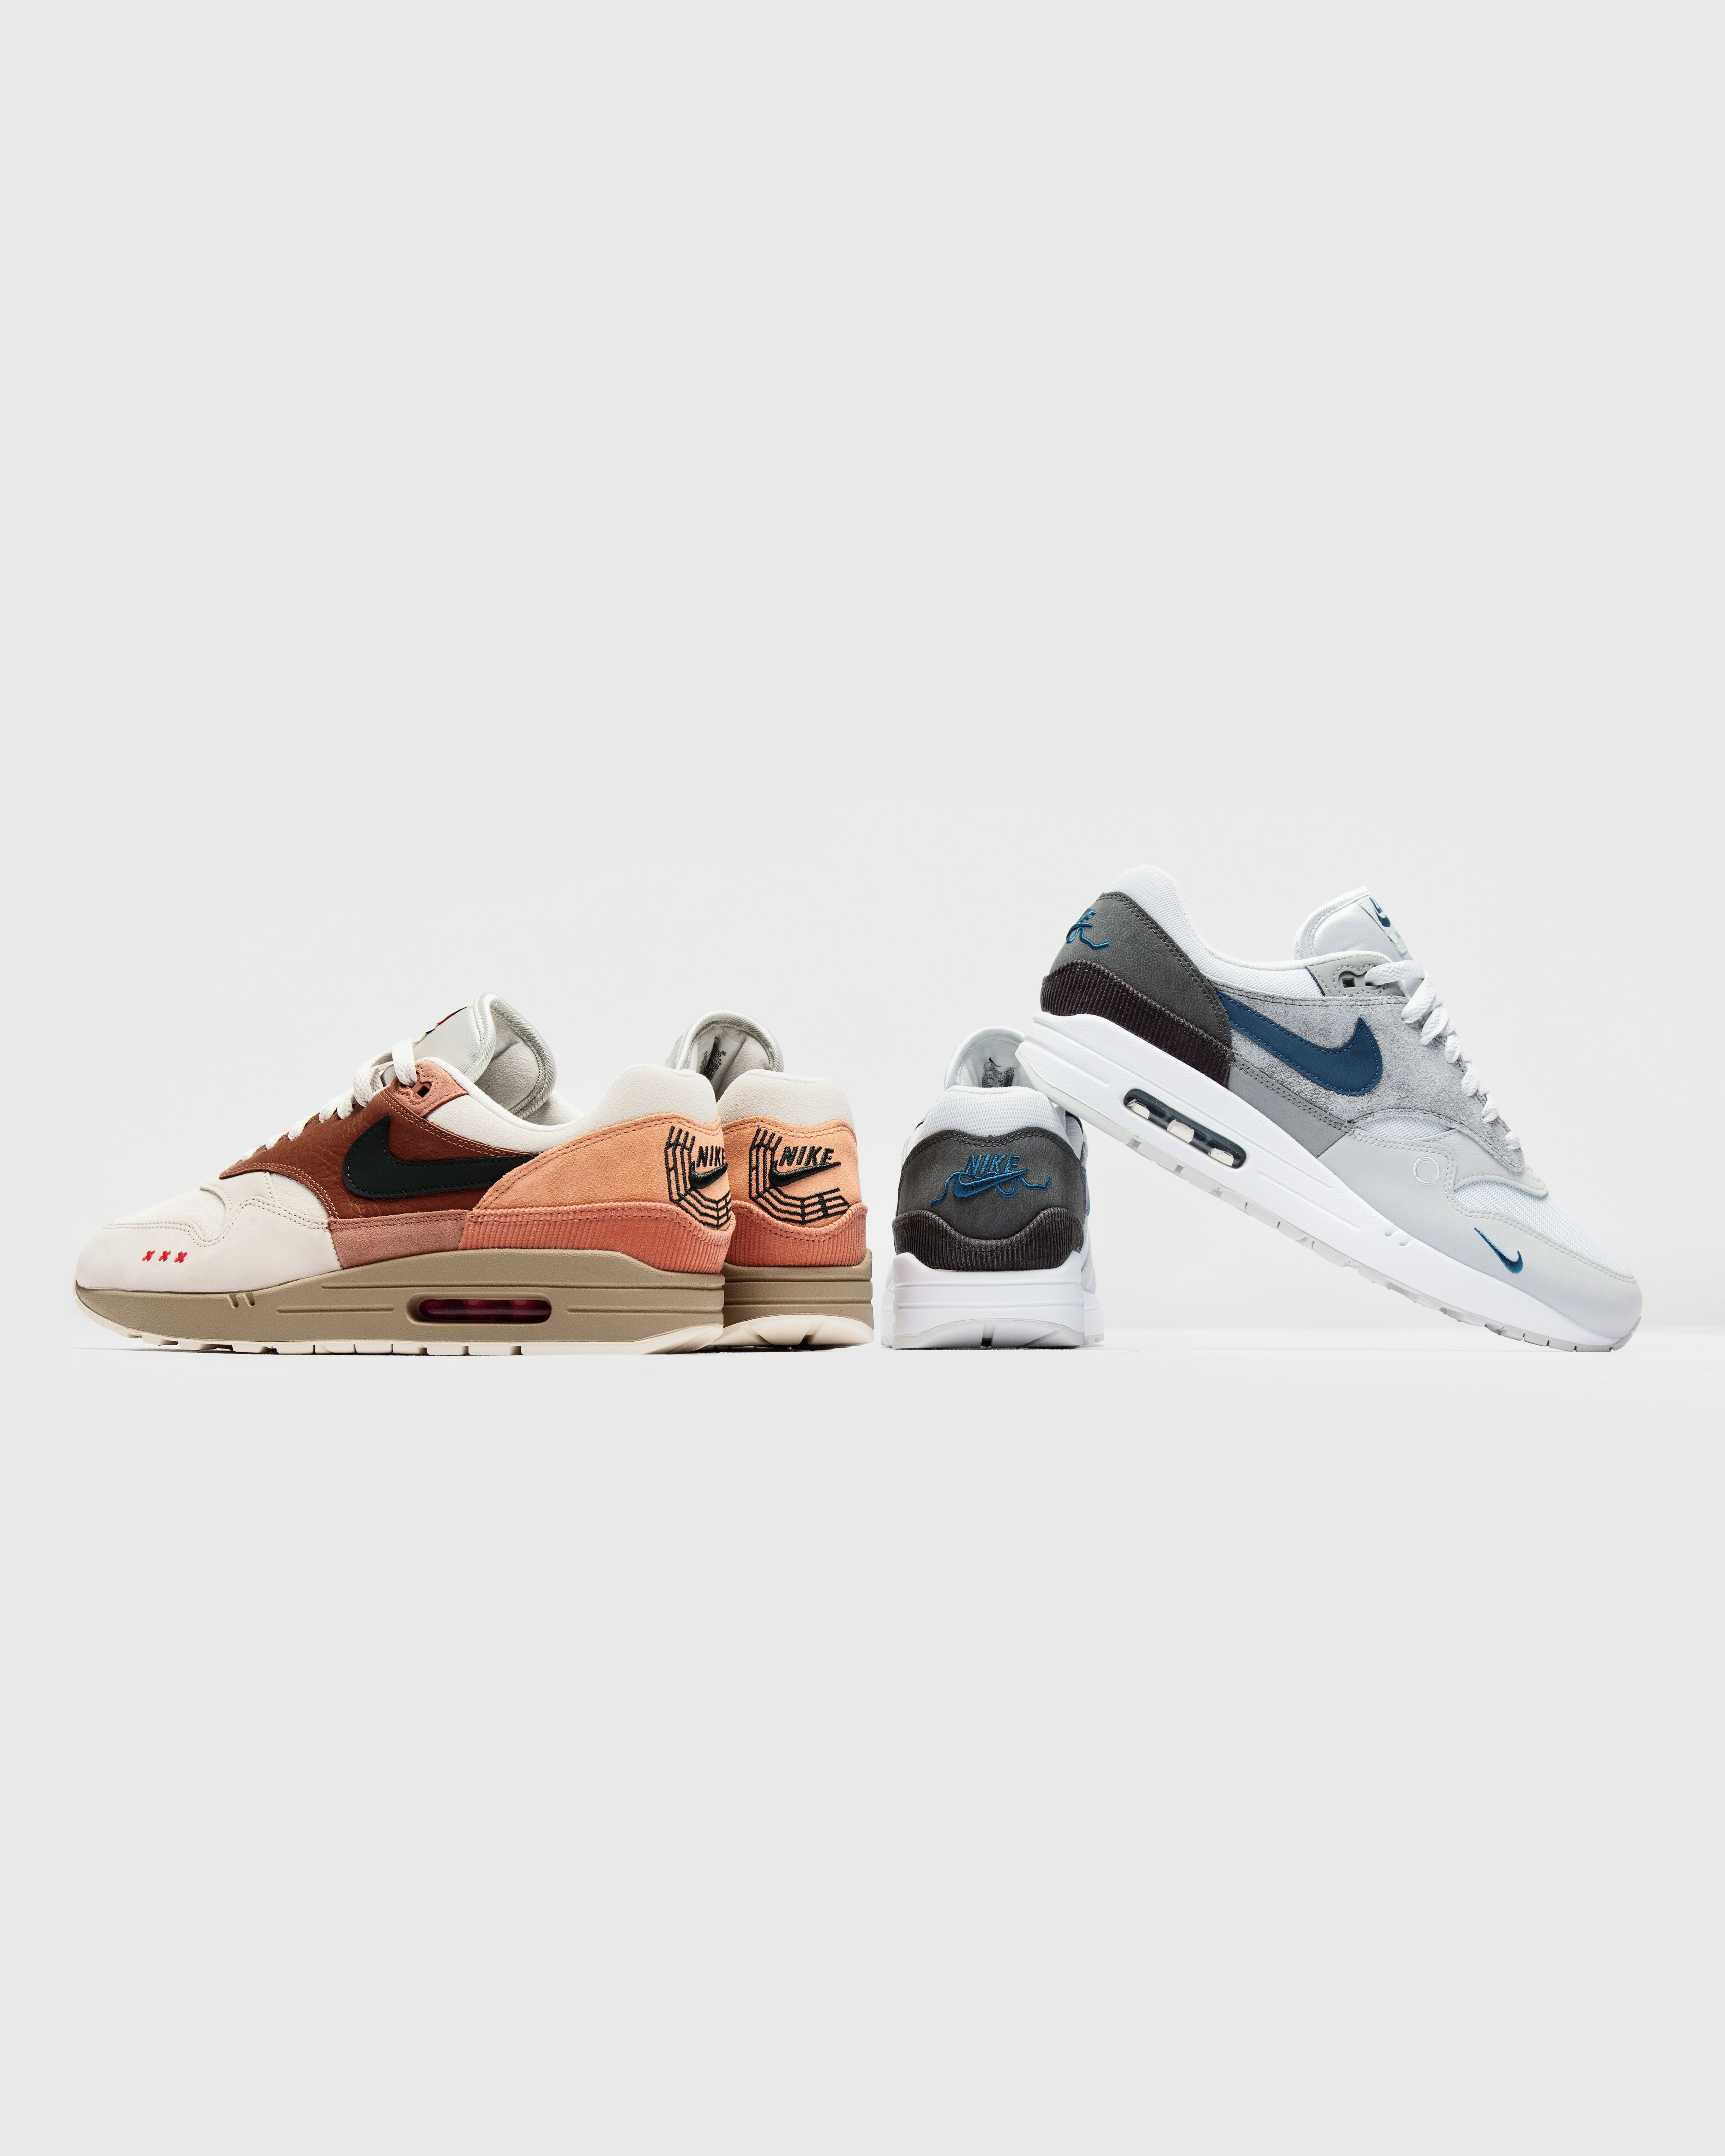 esponja Activamente Arruinado  Our online raffle for the Nike Air Max 1 'London' & 'Amsterdam' are live -  sign up now on www.bstn.com! #bstn… in 2020 | Nike shoes outfits, Nike  shoes outlet, Nike air max